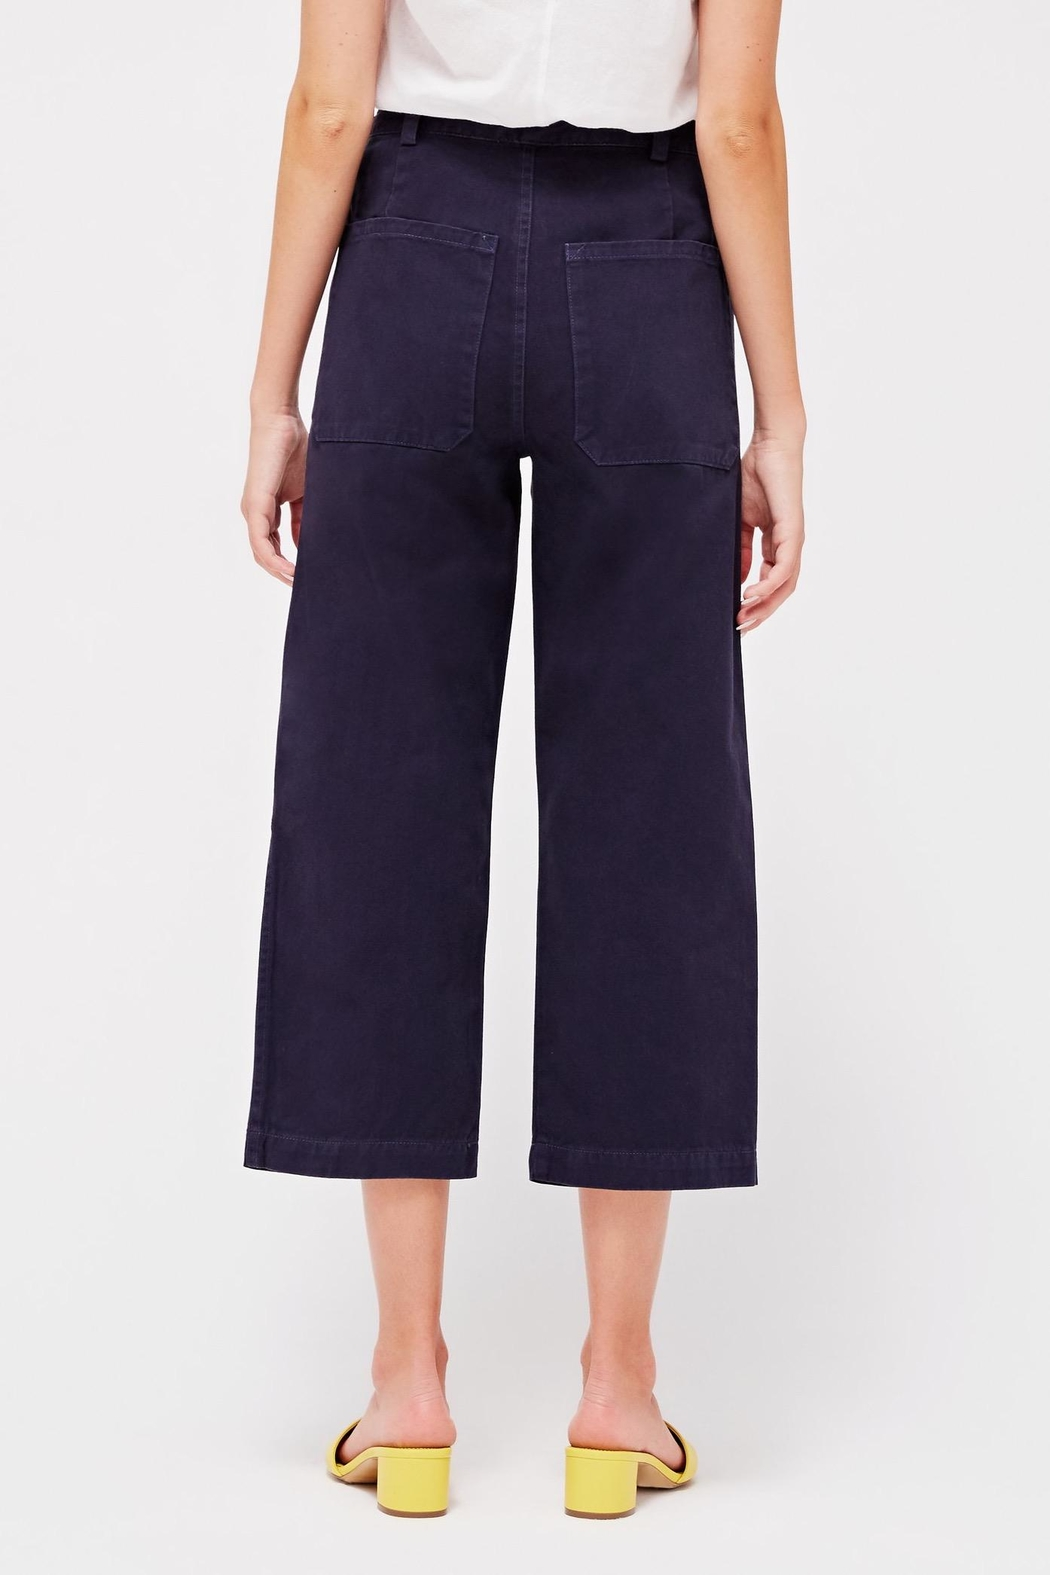 LACAUSA Stella Trousers - Front Full Image